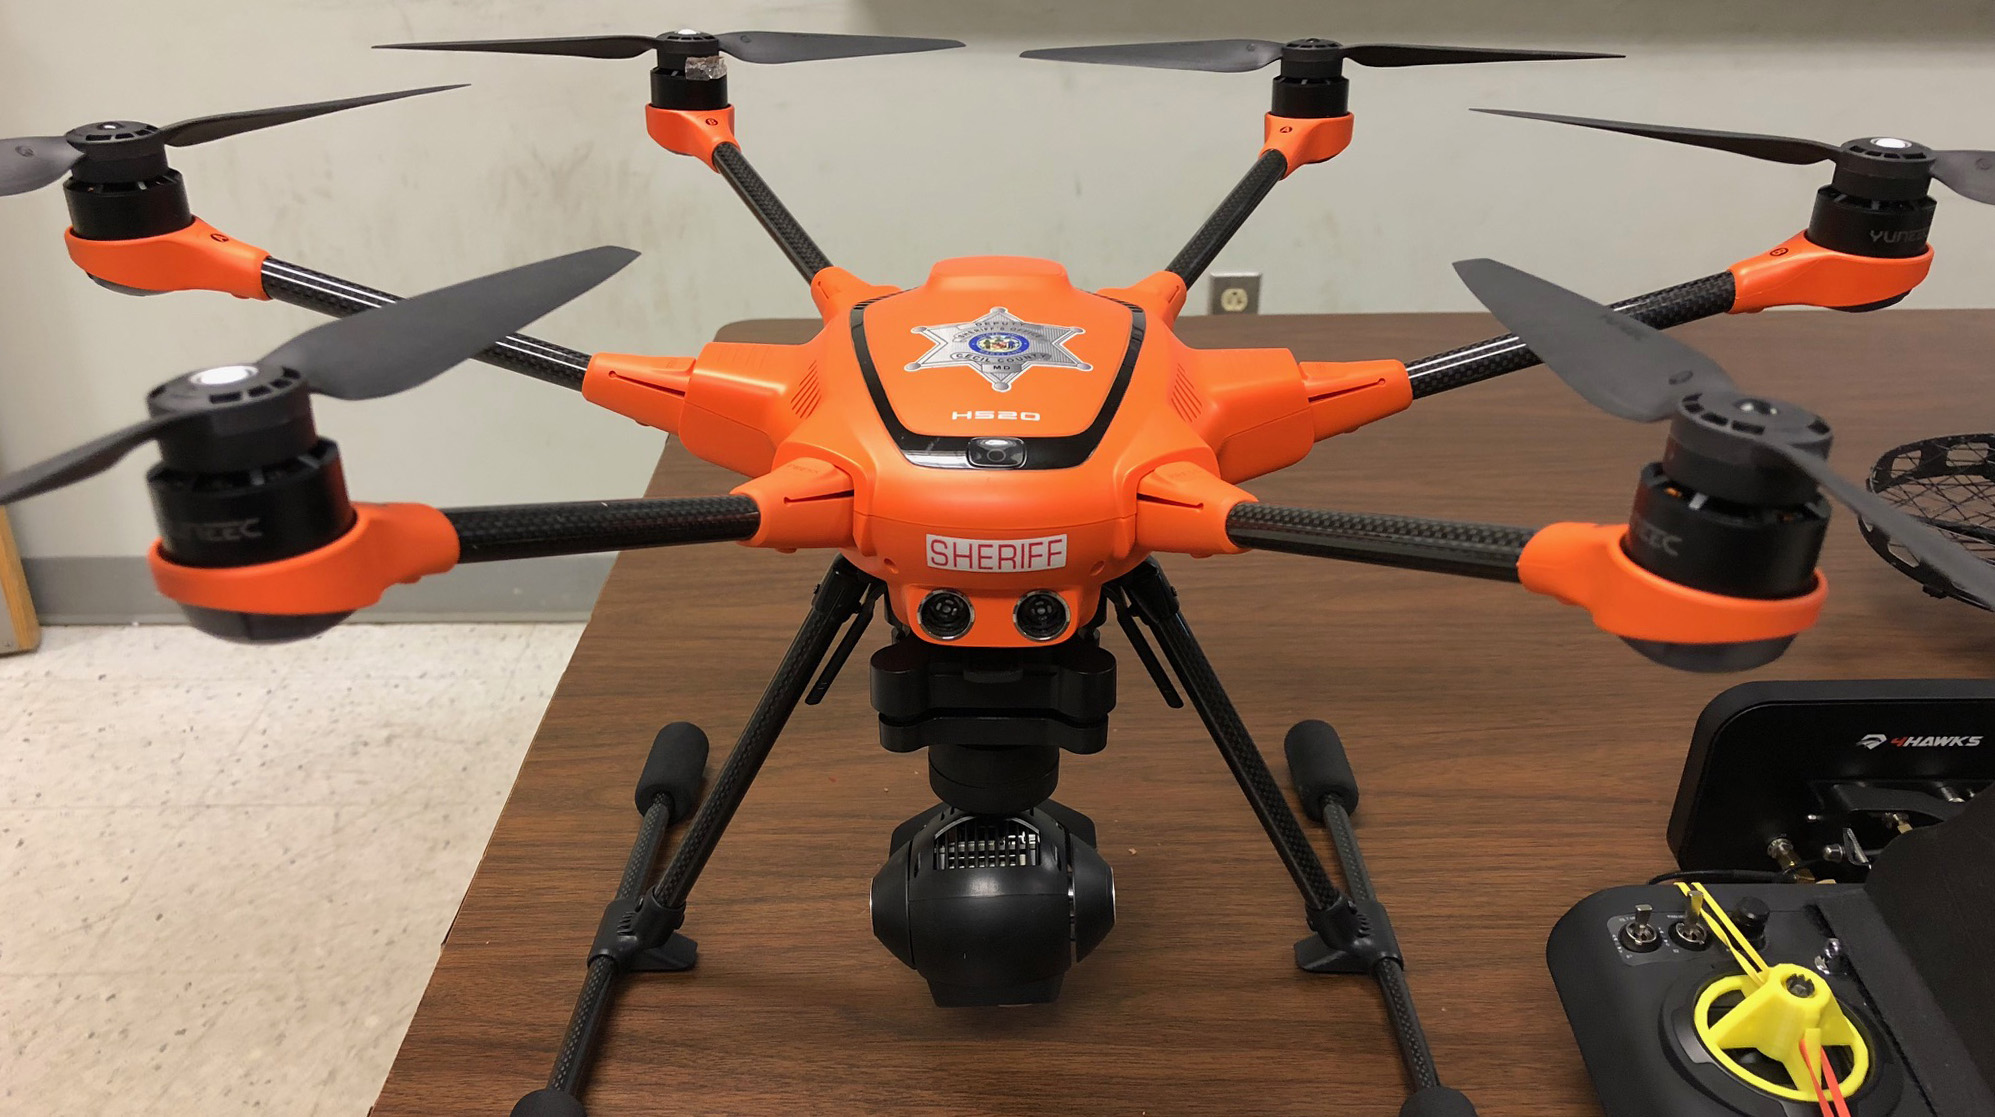 This Yuneec H520 provides both thermal and visible imaging capability. Photo courtesy of Cecil County Sheriff (Maryland).